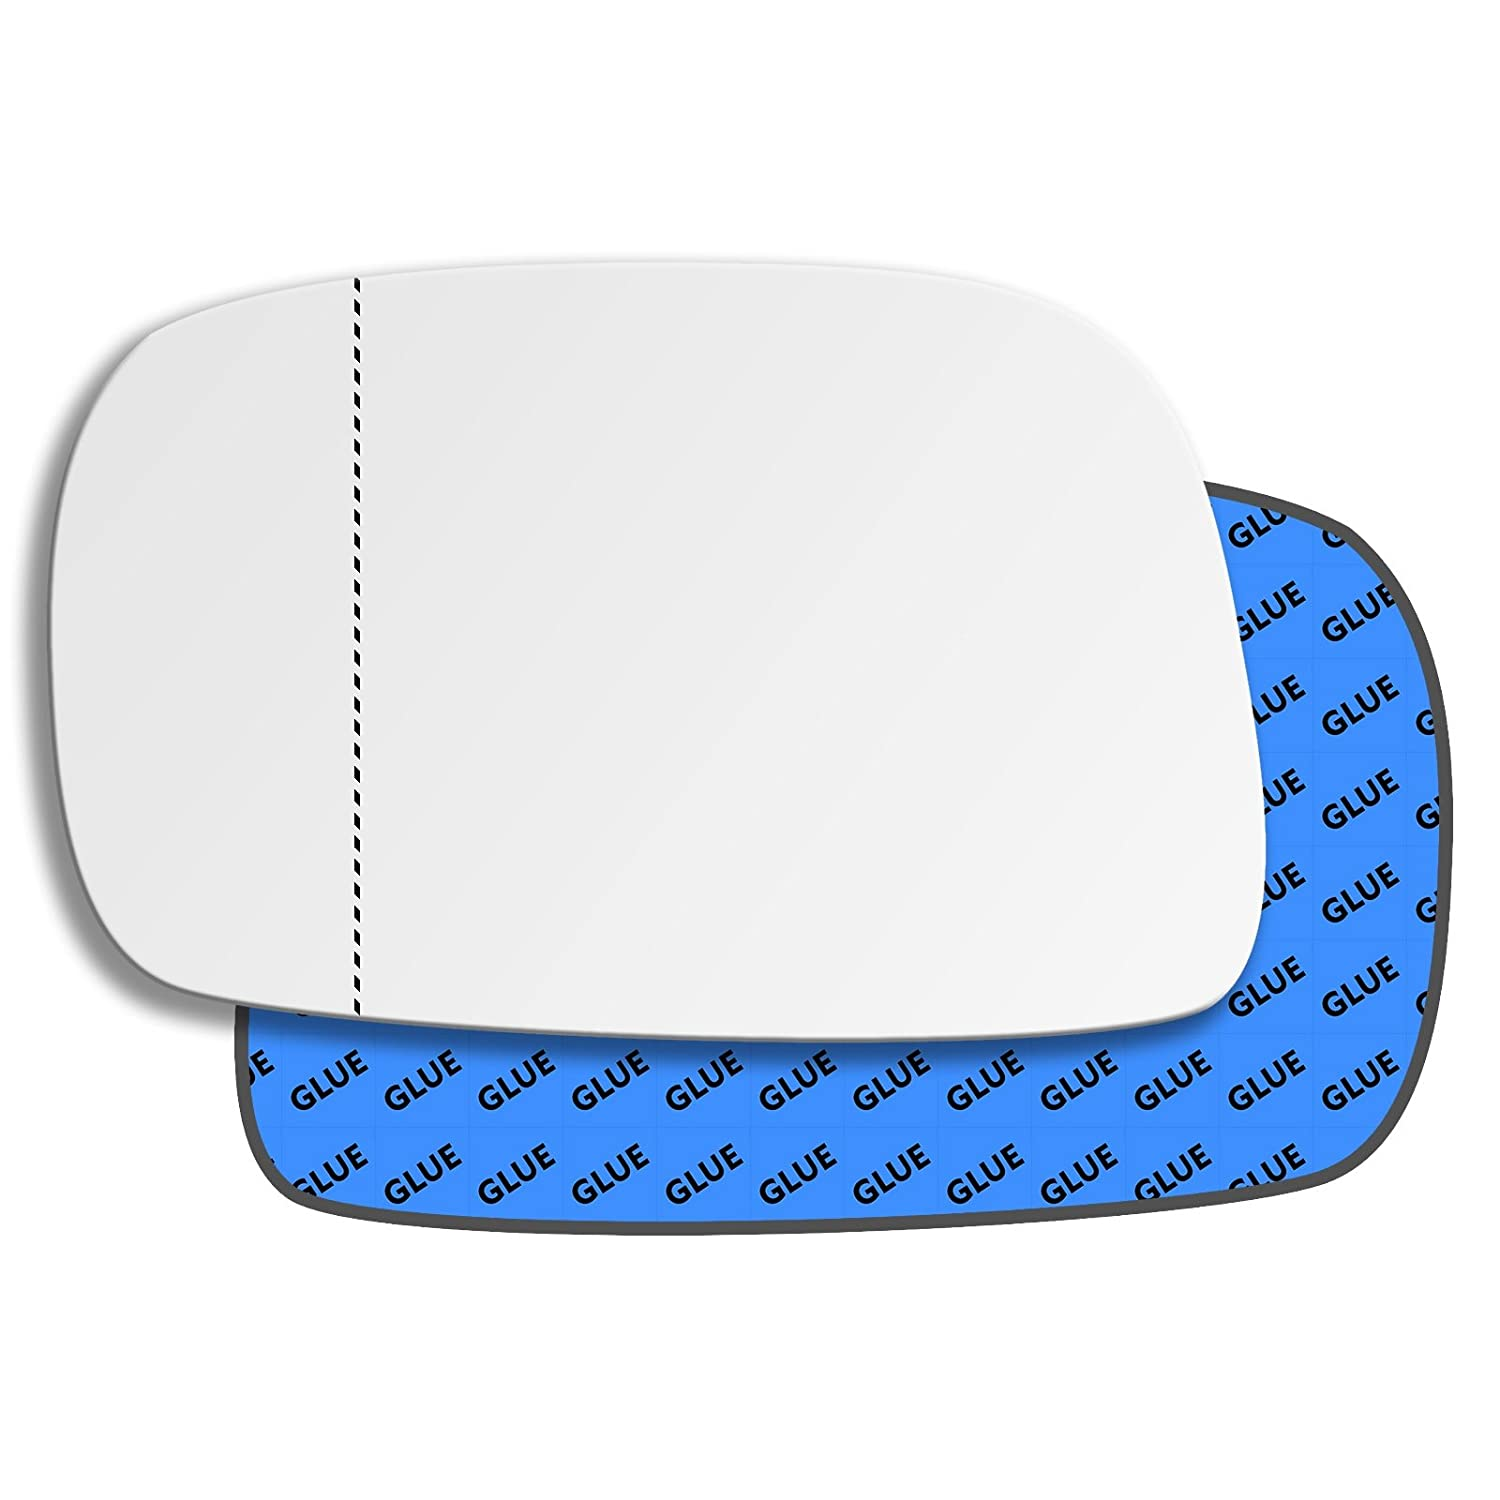 Hightecpl 136LAS Left Hand Passenger Near Side Wide Angle Door Wing Mirror Glass Replacement Channel Autoparts Limited